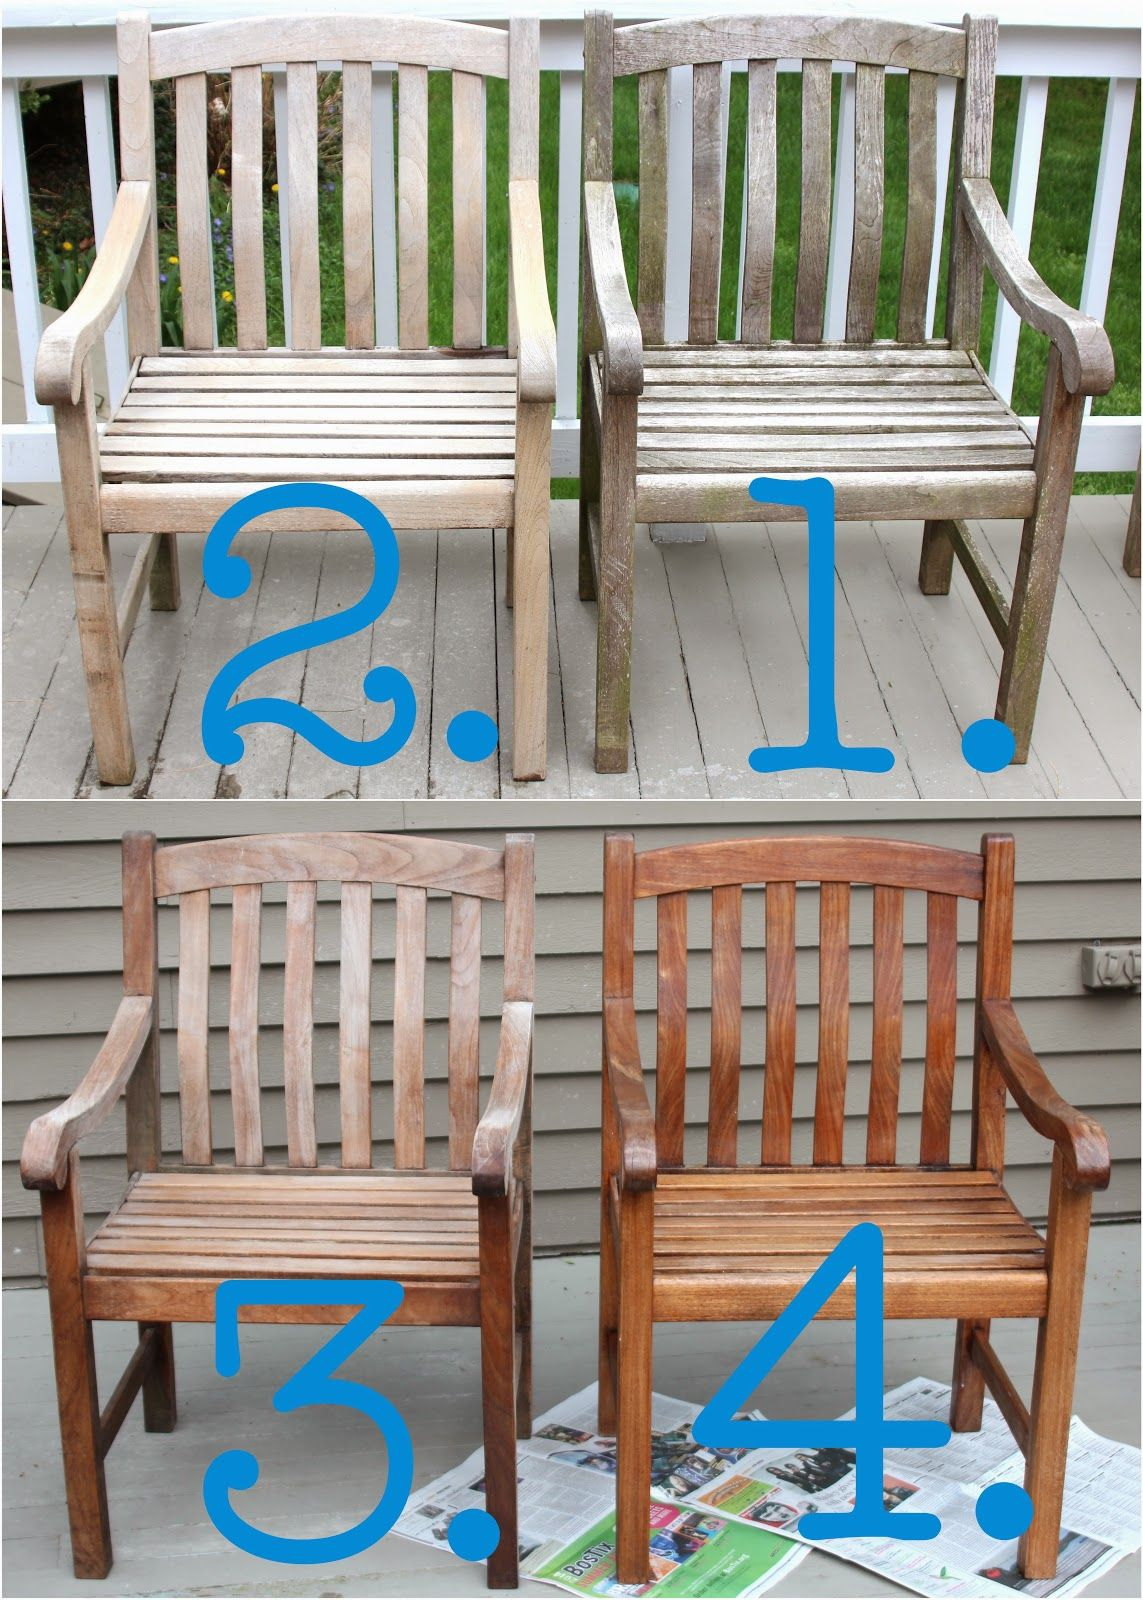 Shine Your Light  Cleaning   Sealing Outdoor Teak Furniture. Shine Your Light  Cleaning   Sealing Outdoor Teak Furniture